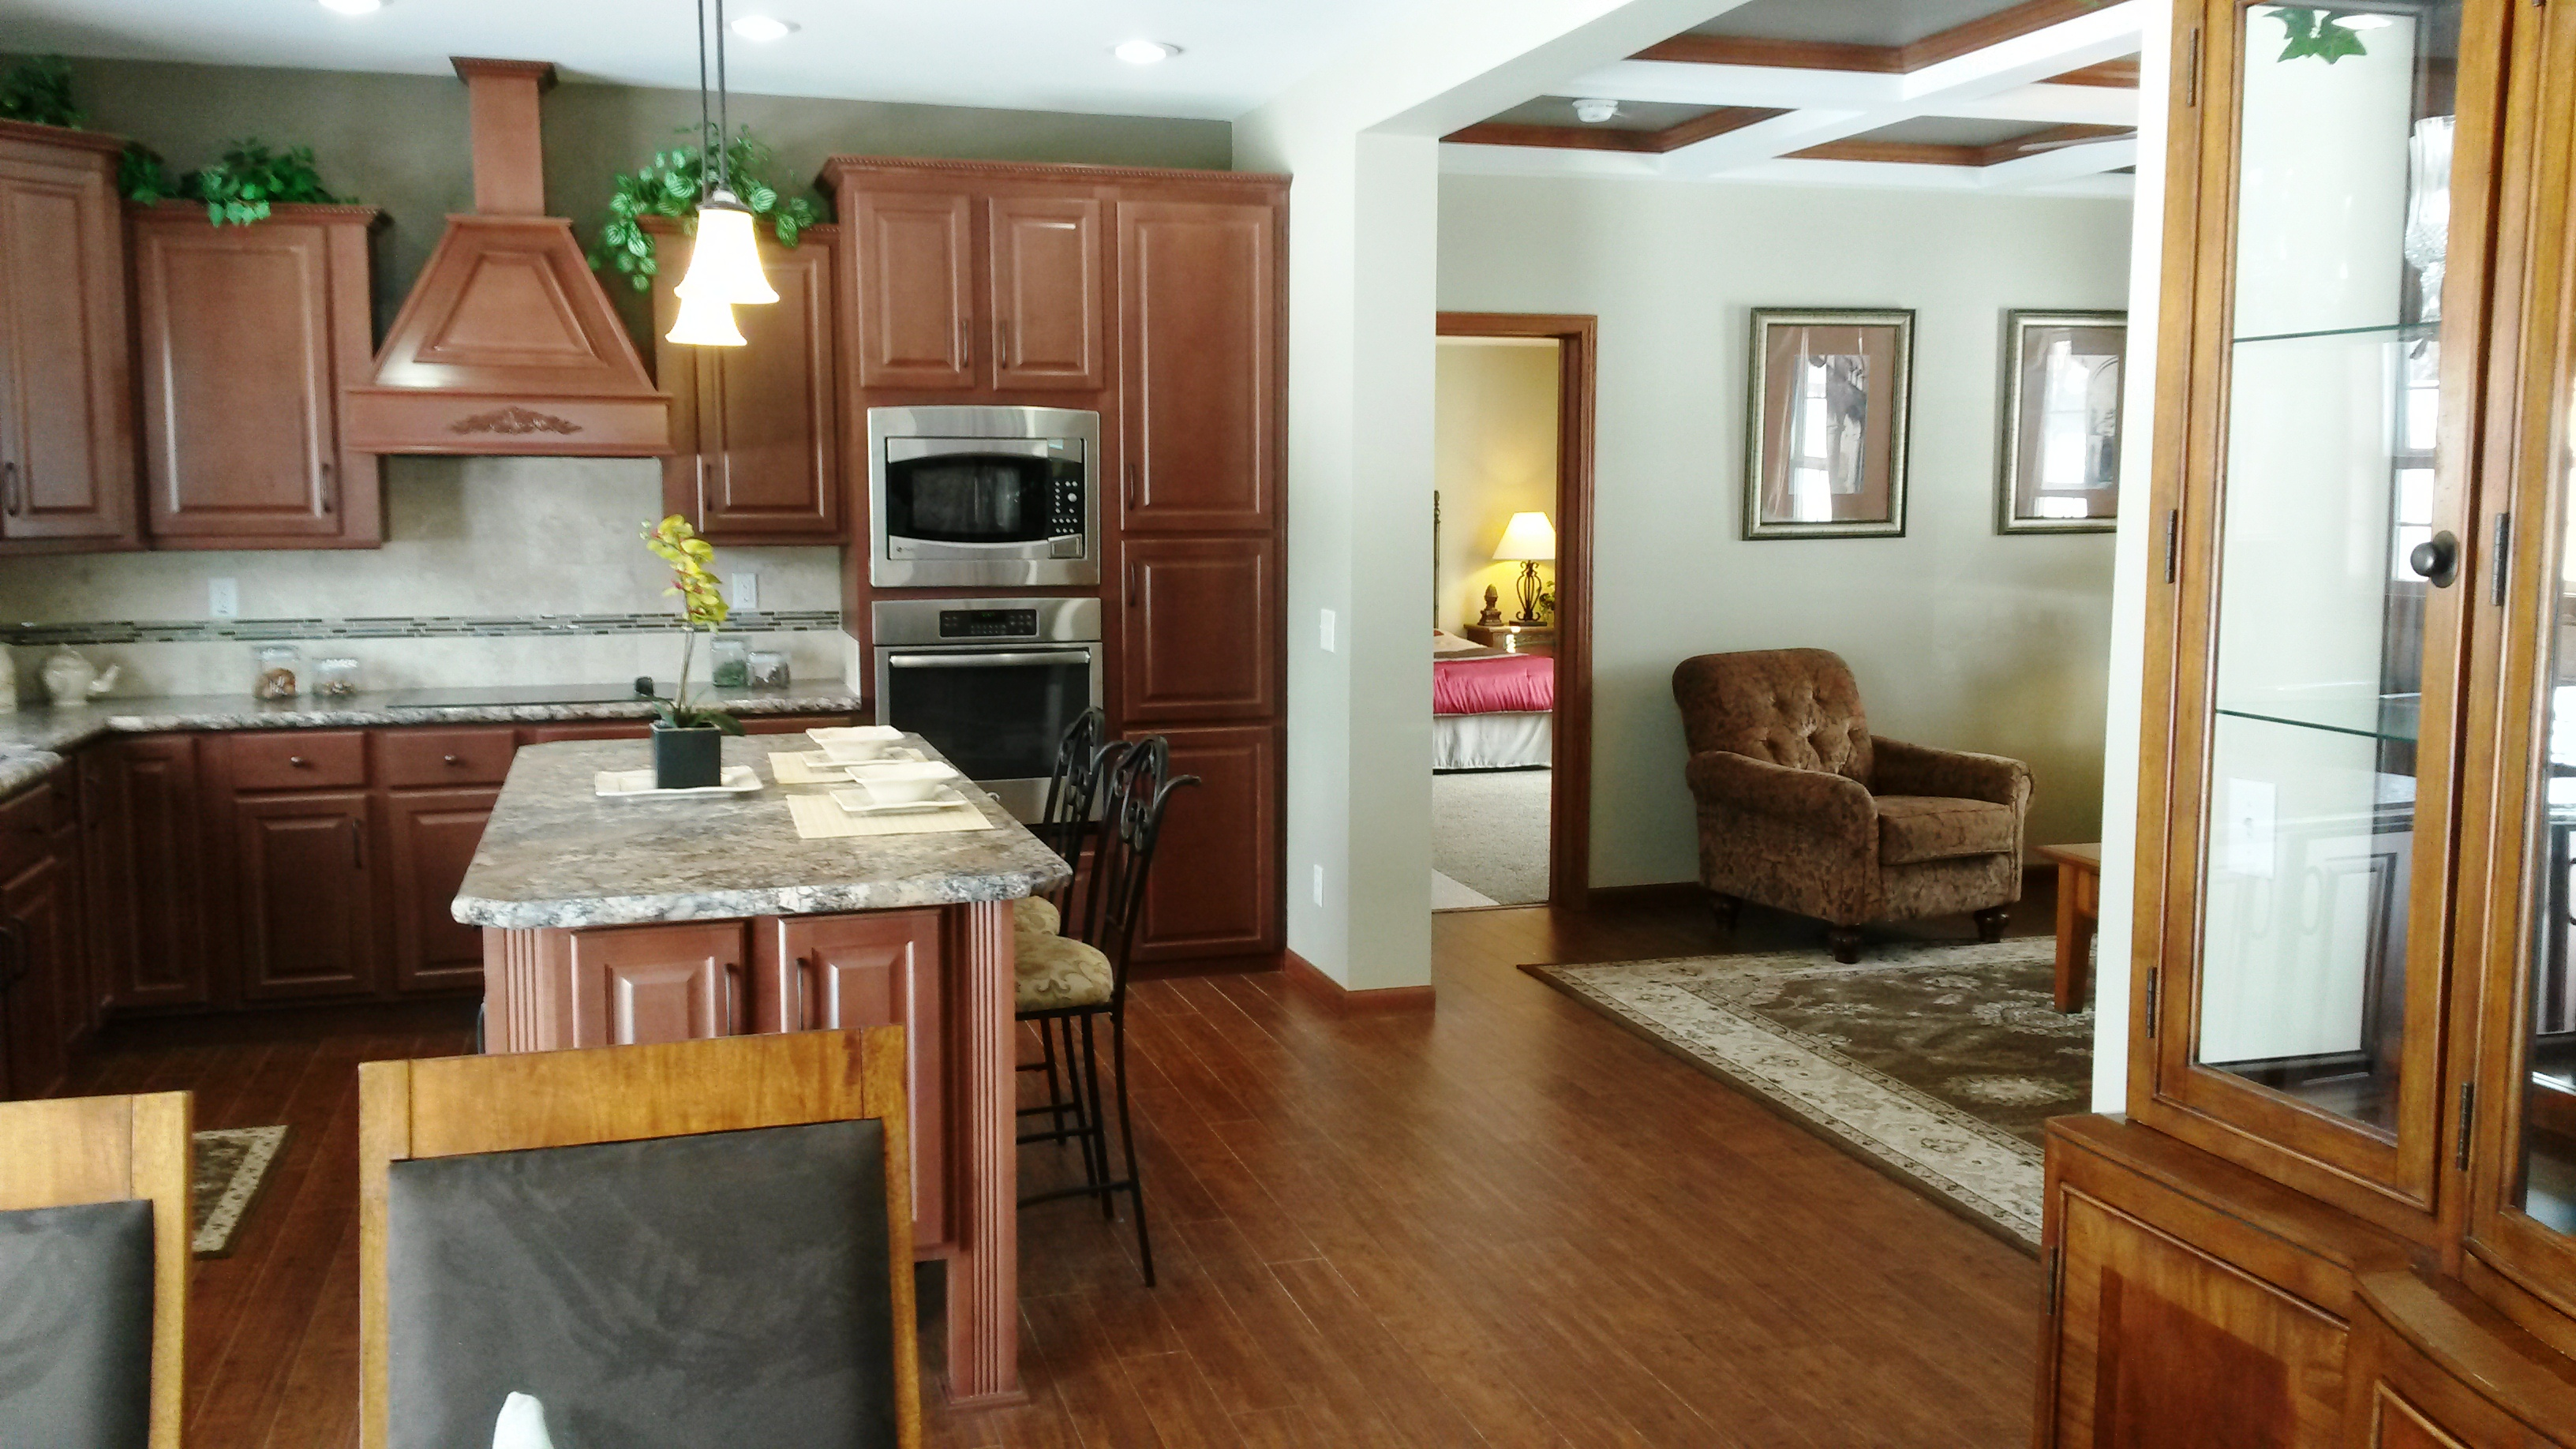 Looking to the kitchen from dining/nook area.